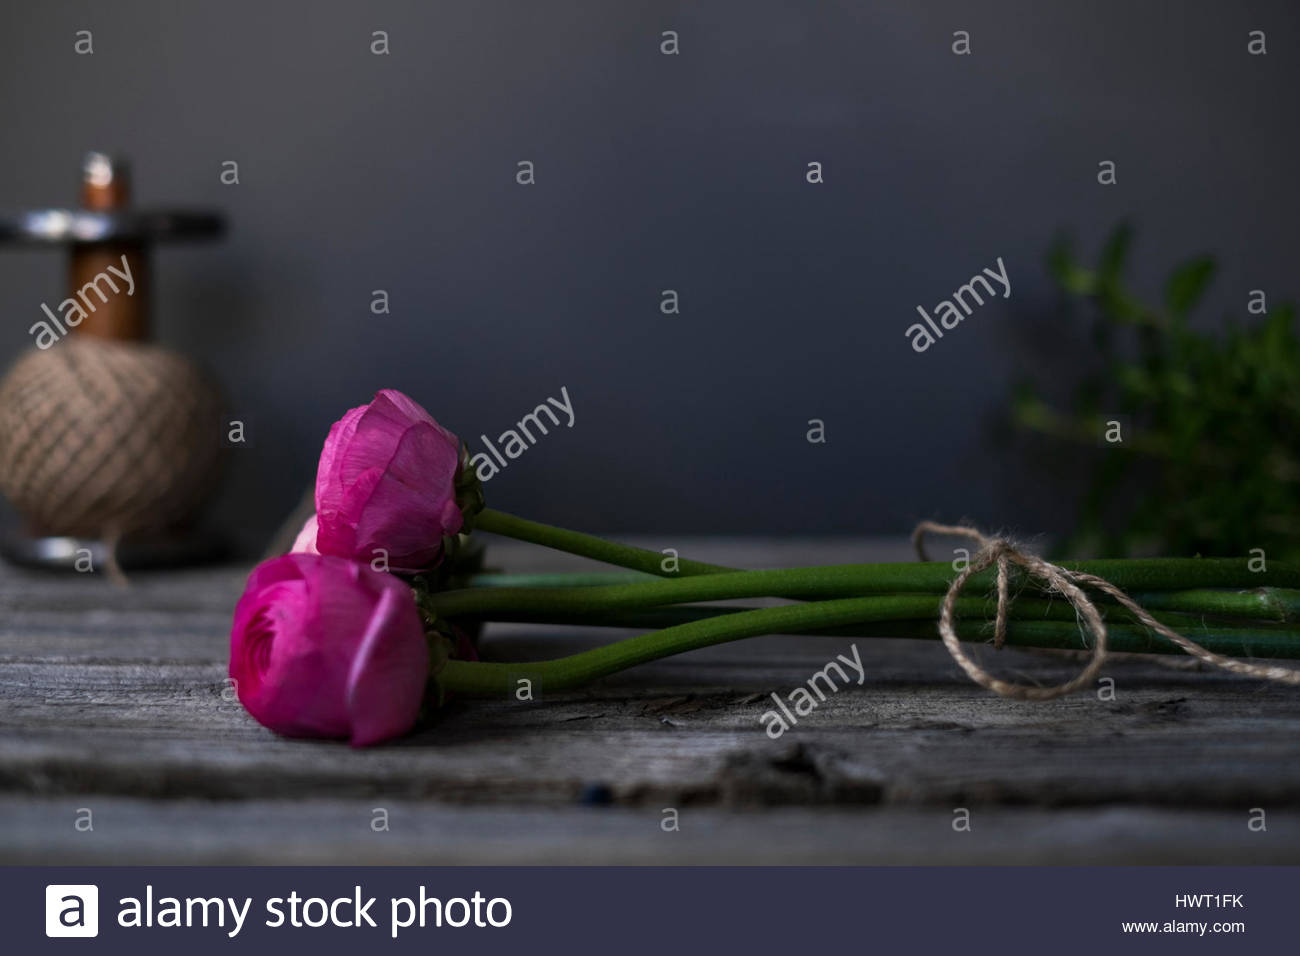 Close-up of pink roses and spool on wooden table - Stock Image